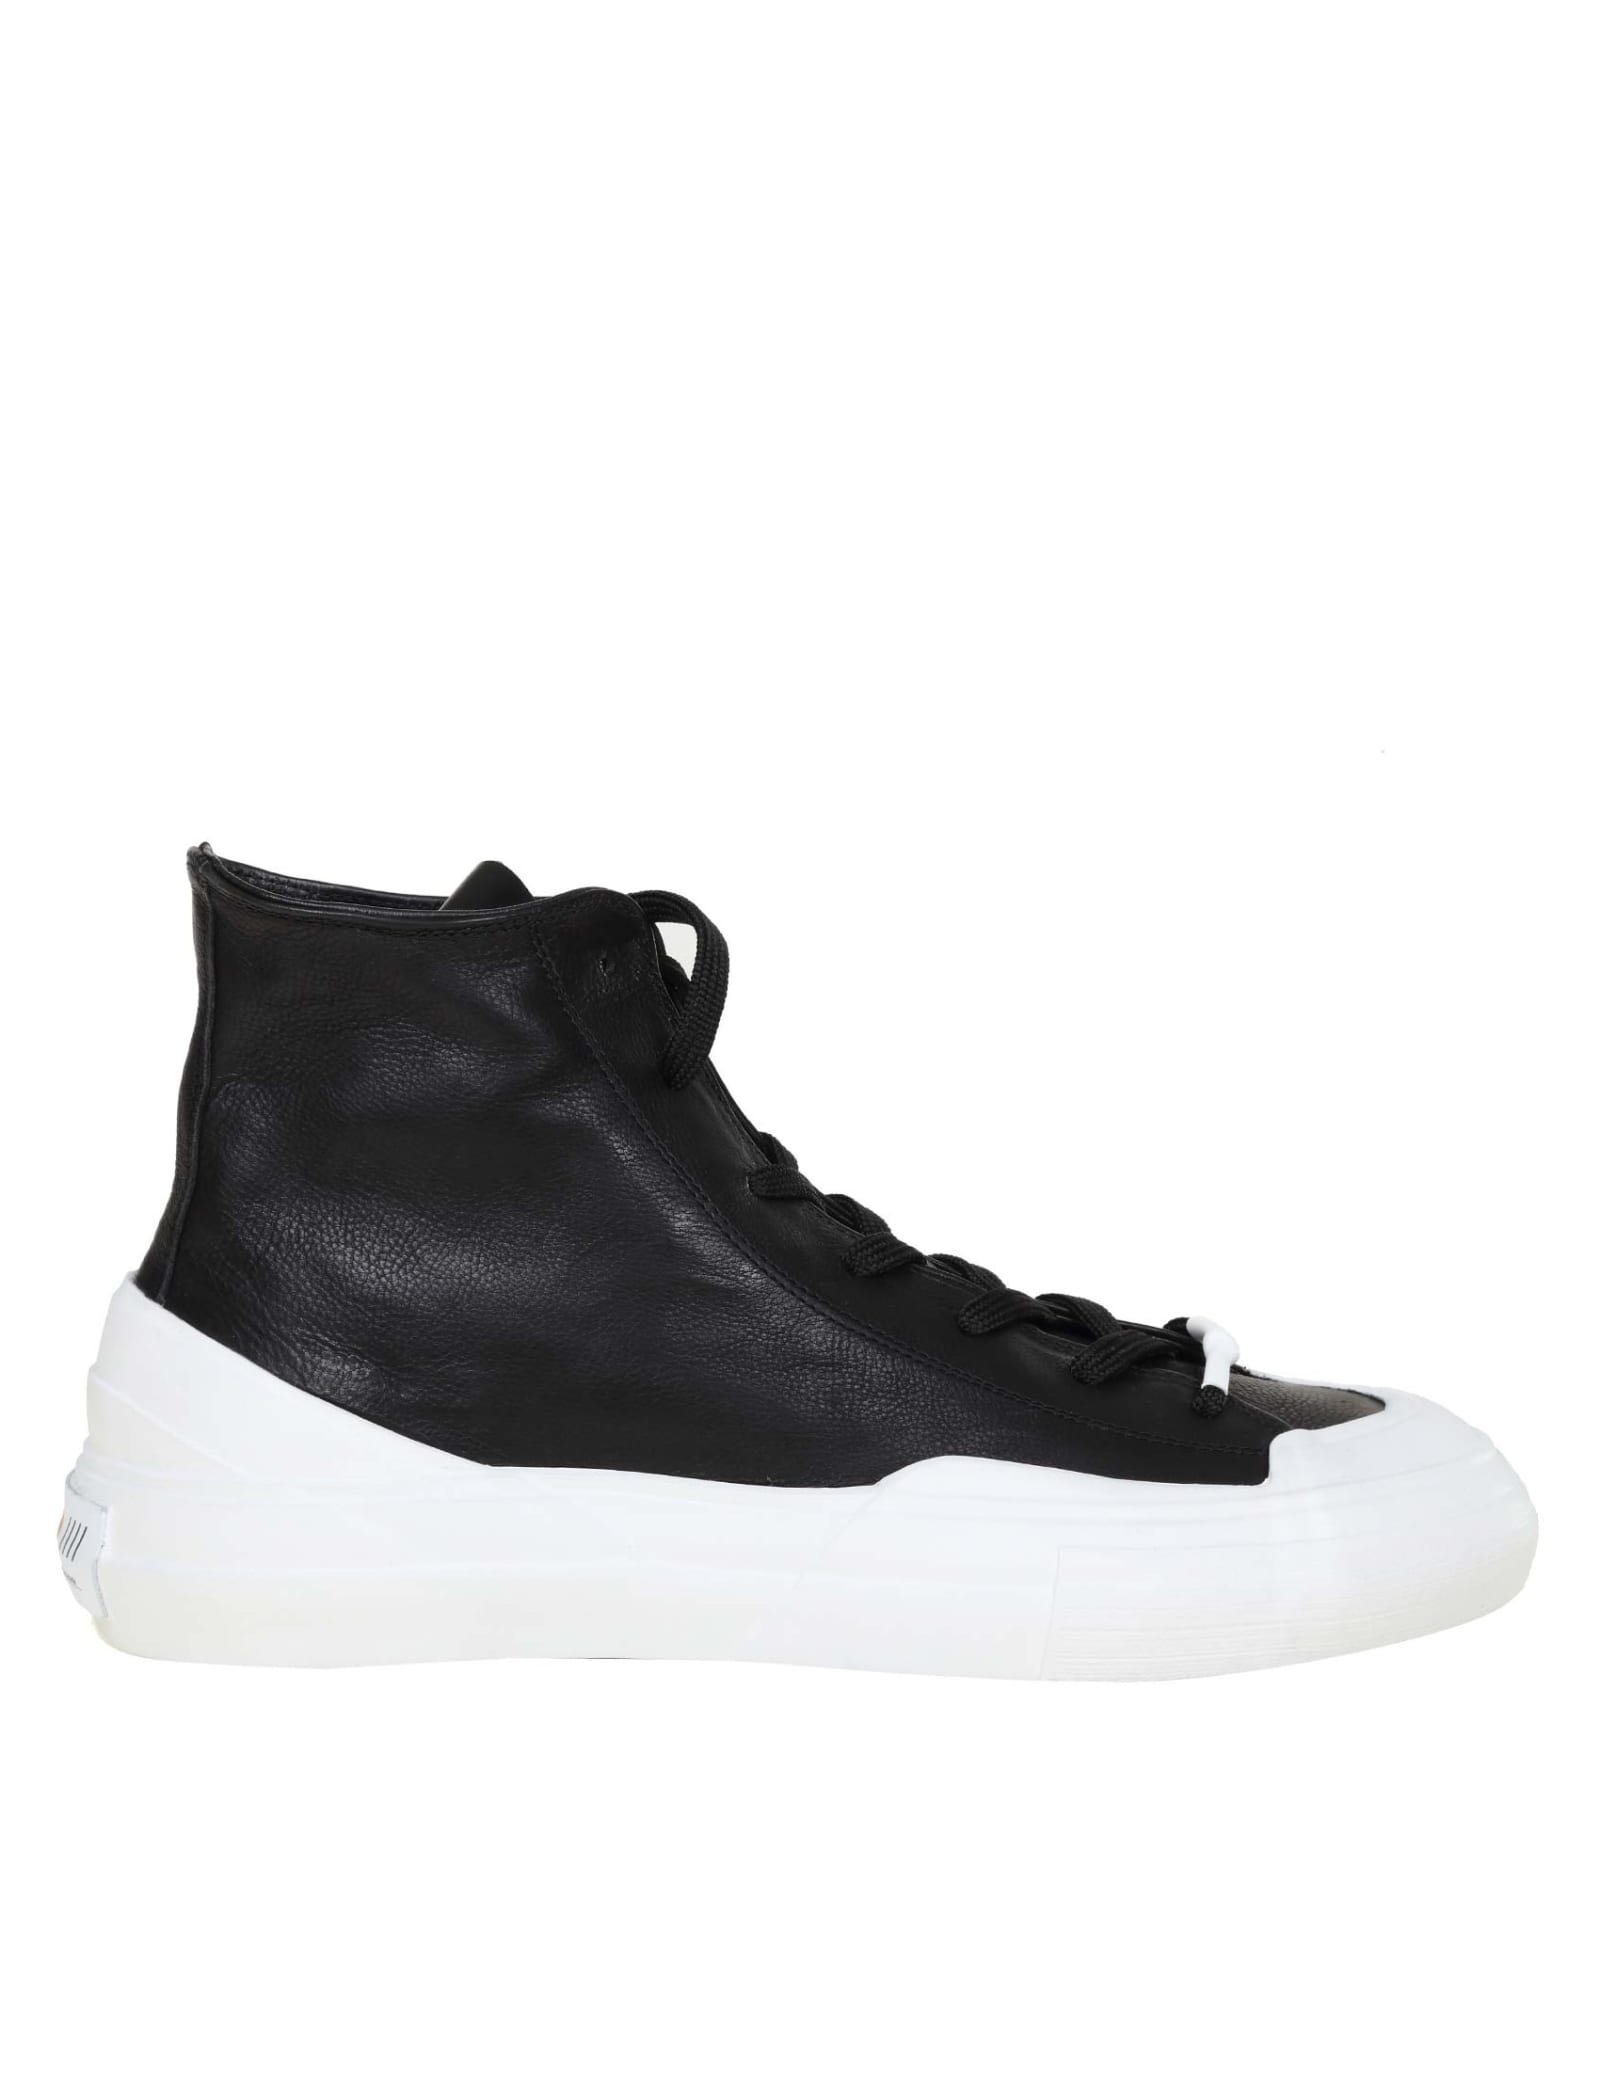 High Sneakers In Black Leather